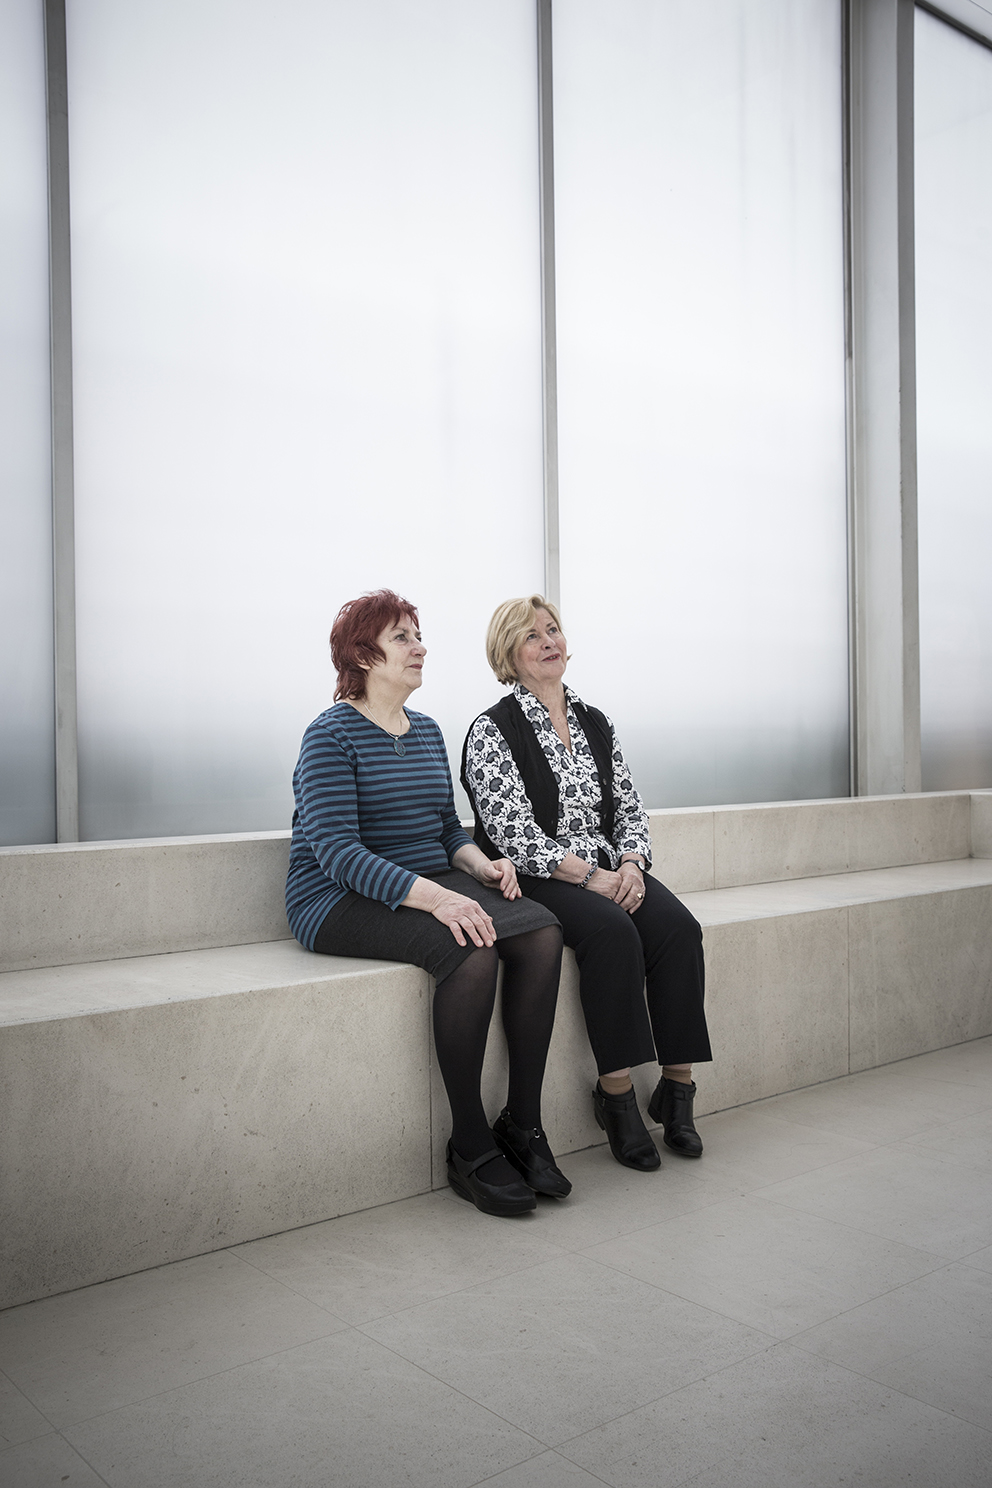 Cynthia Barlow and Anne Austen, shot for the Two's Company feature for the Guradian Weekend